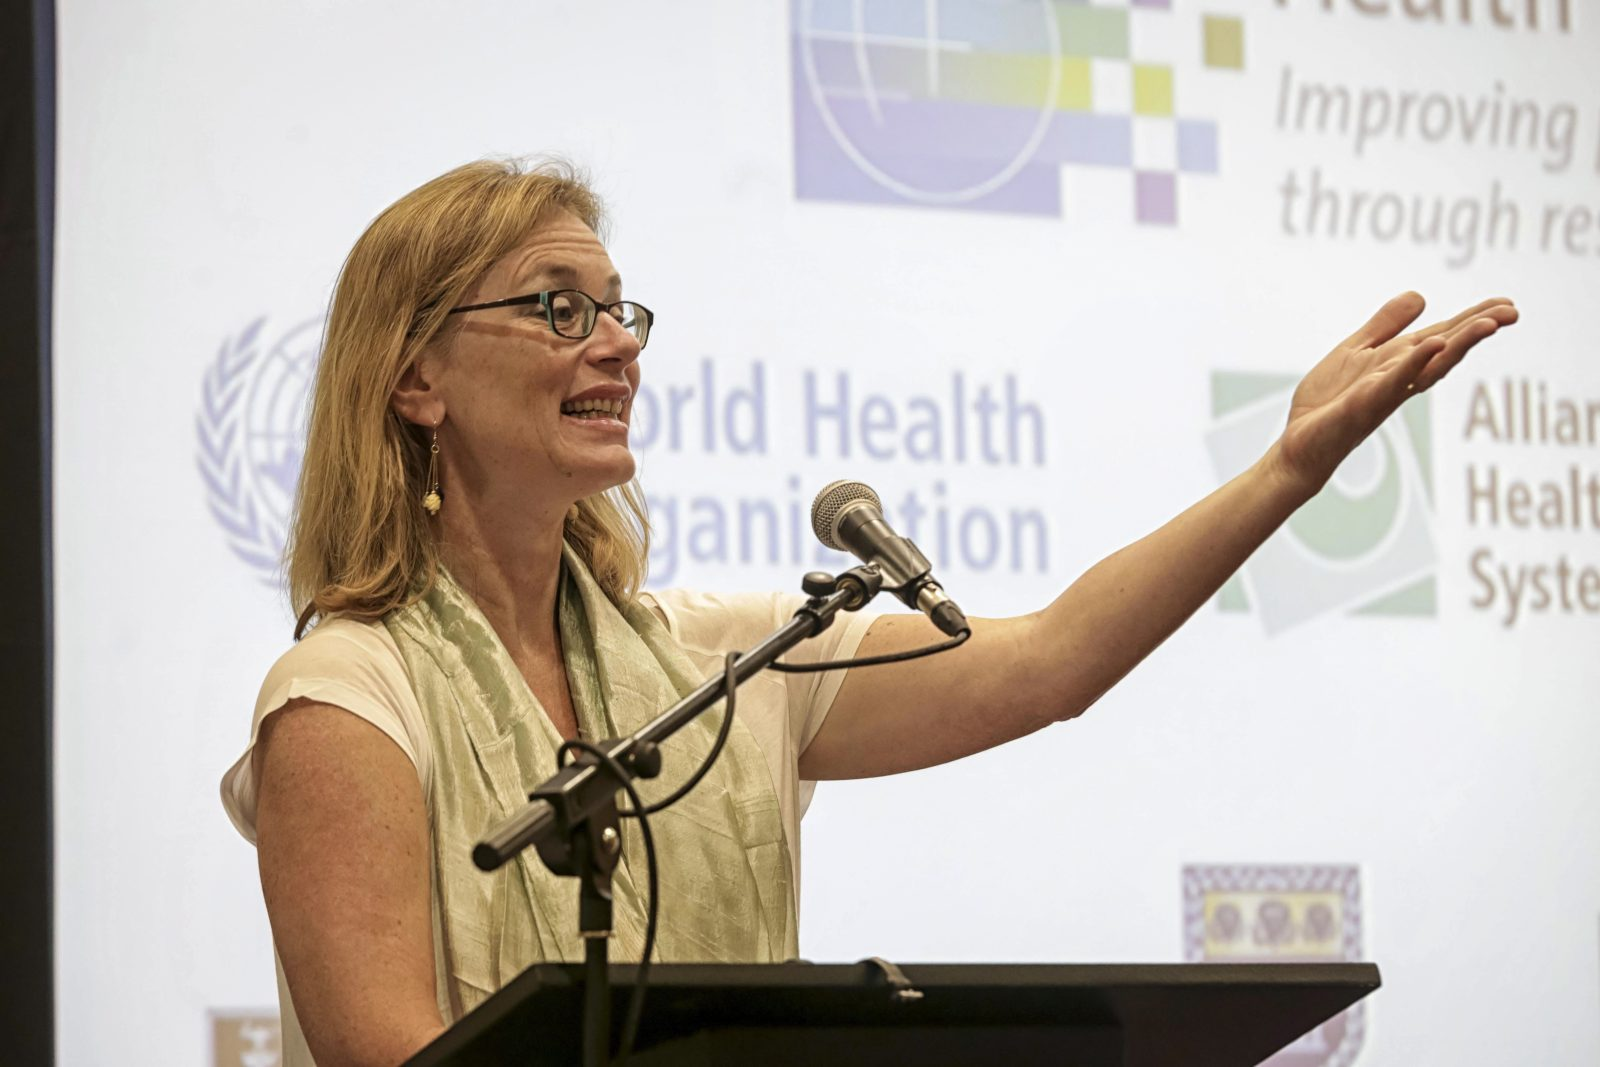 Sara Bennett standing at a podium and speaking at HSR2014